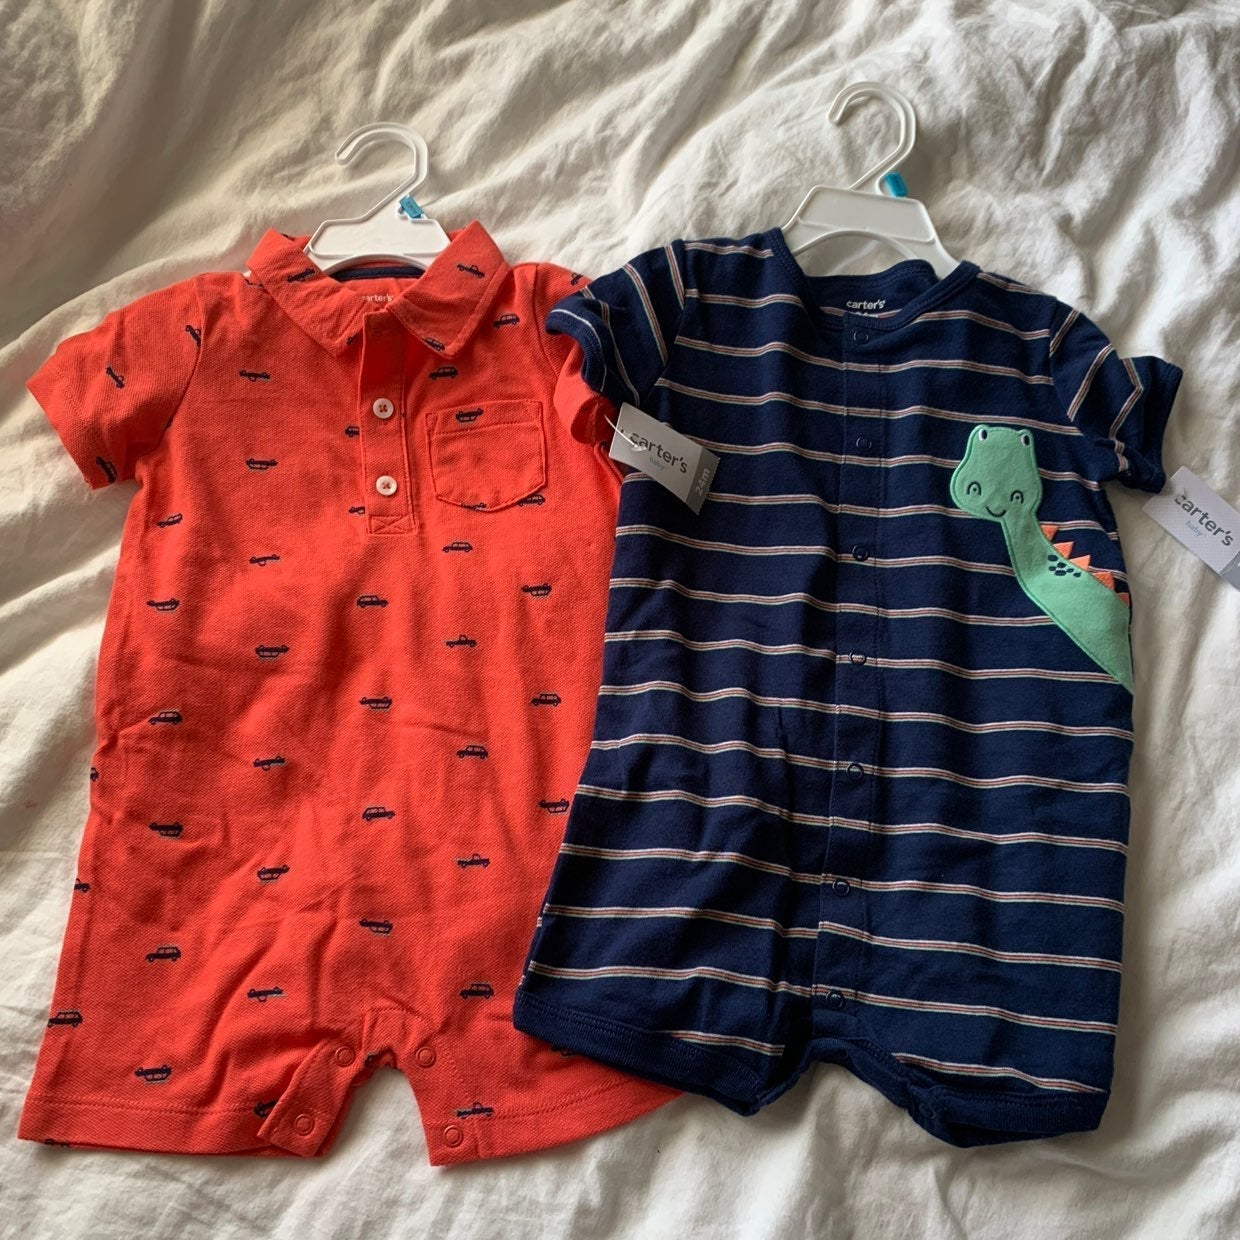 NWT Baby rompers 24mo